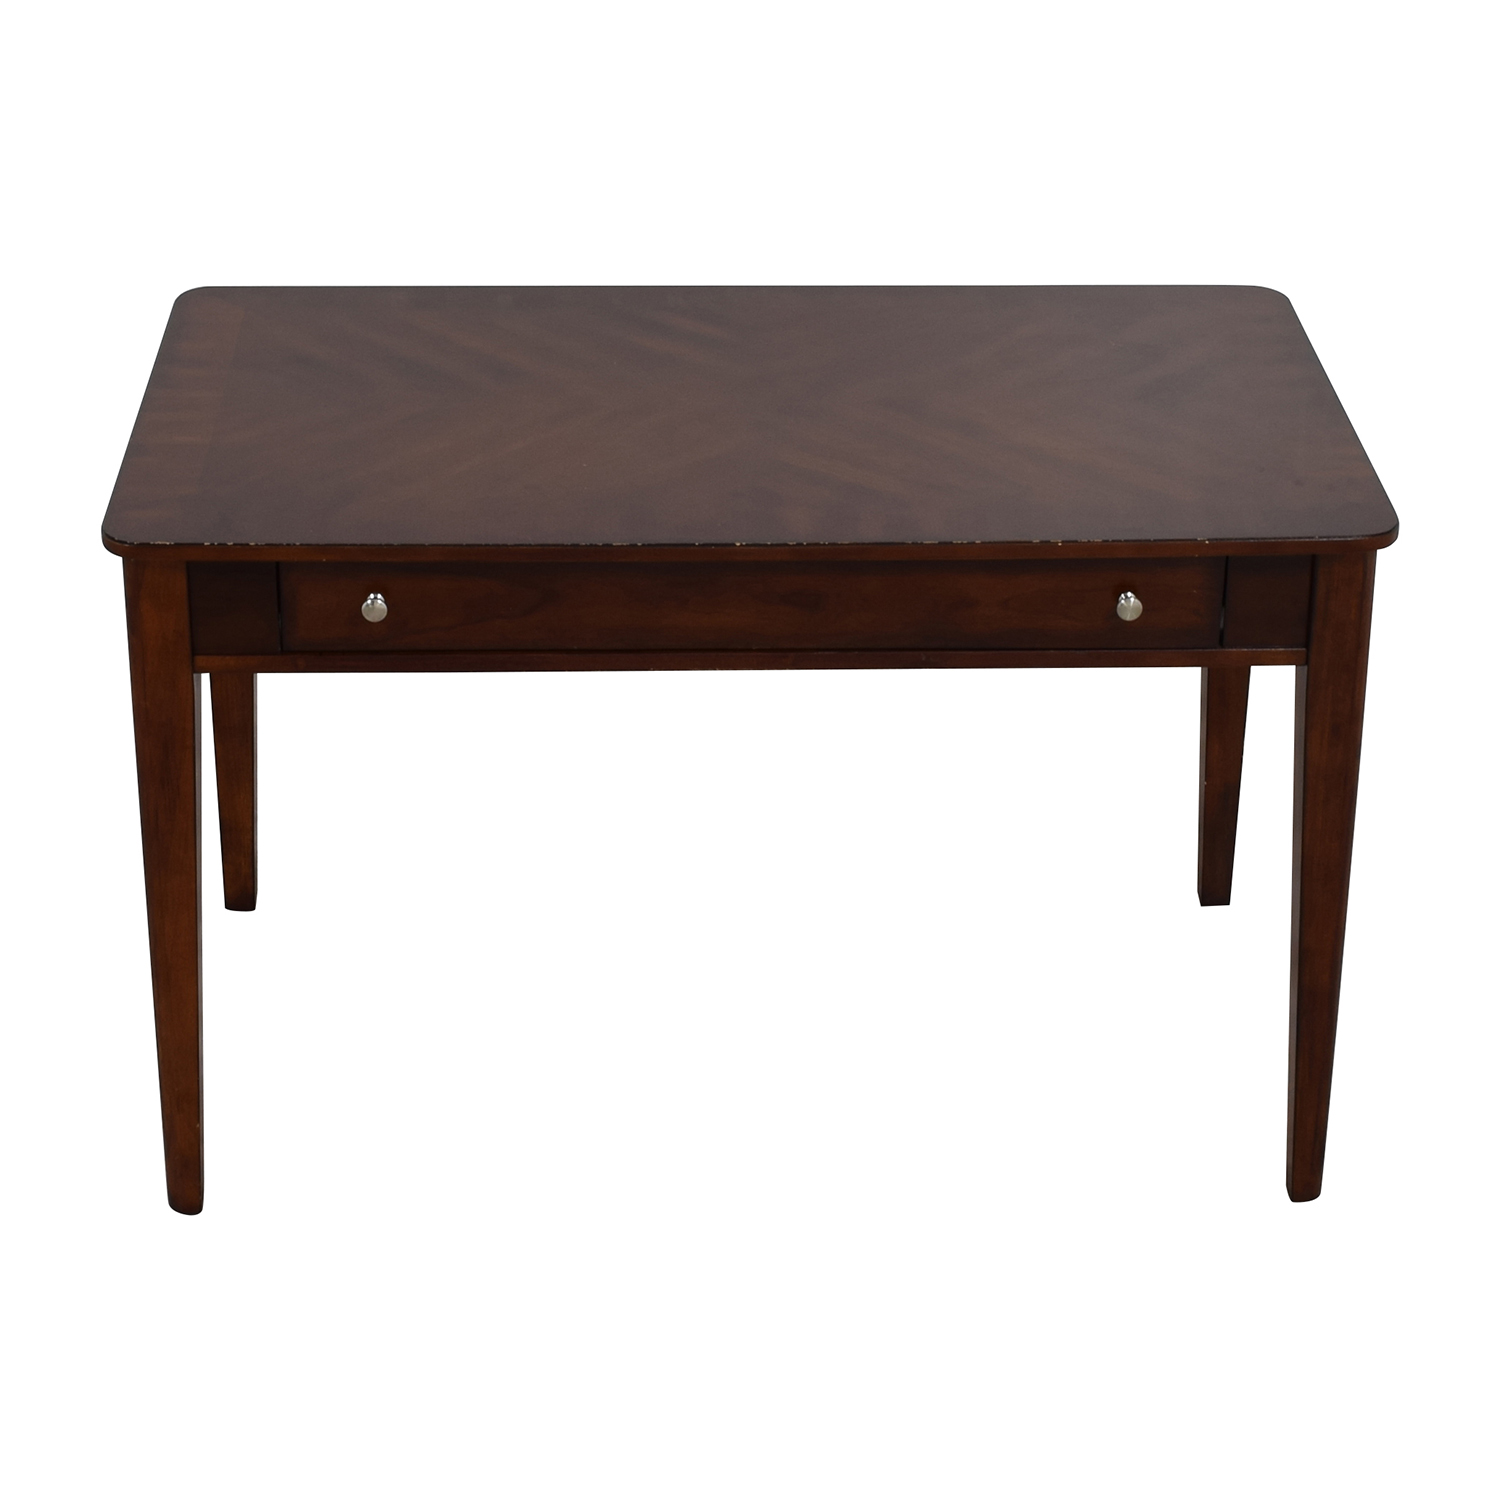 Brown Wood One Drawer Desk / Tables